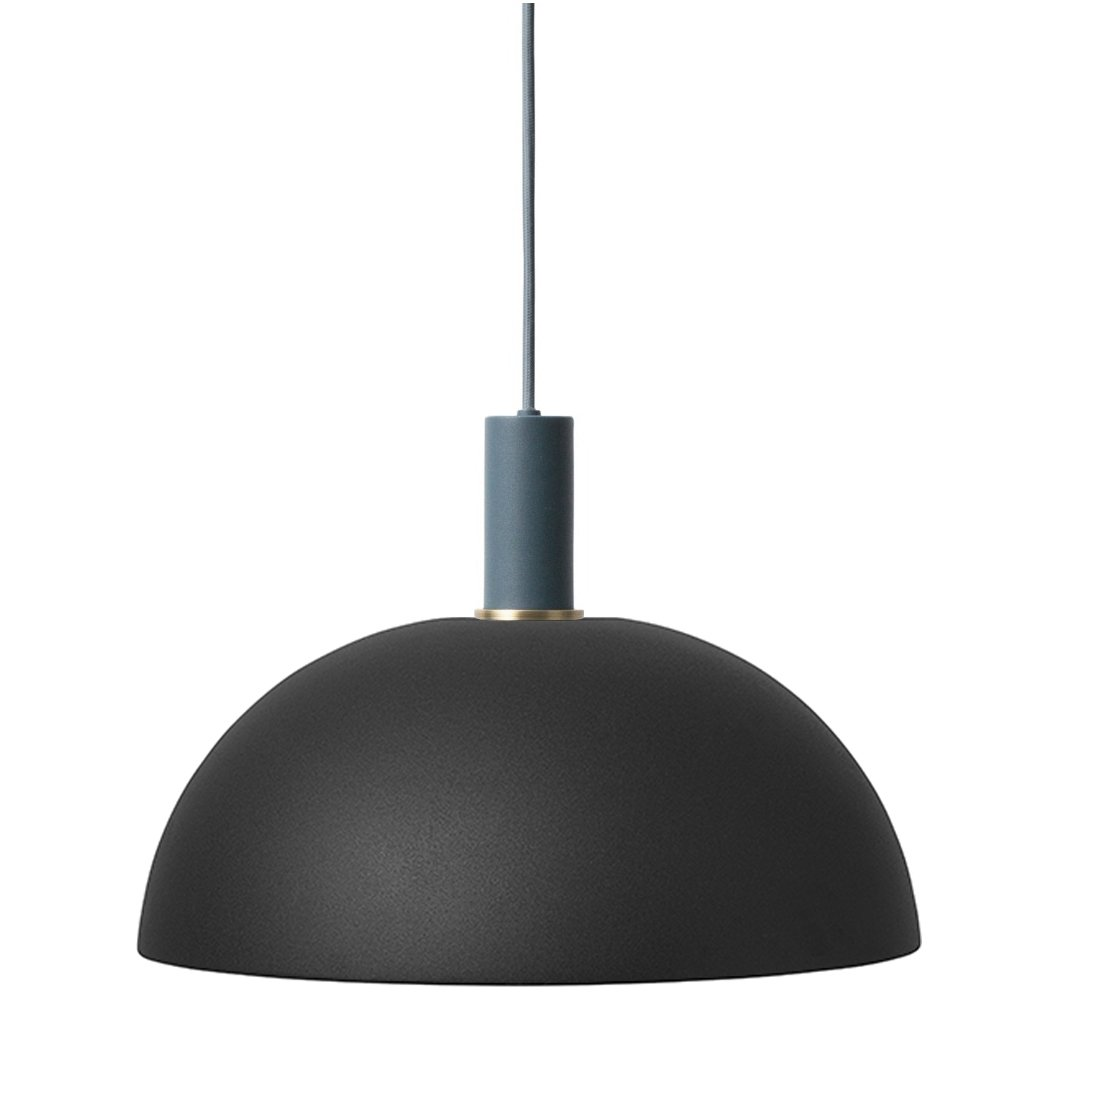 Ferm Living Collect Dome Low Hanglamp Donkerblauw Zwart